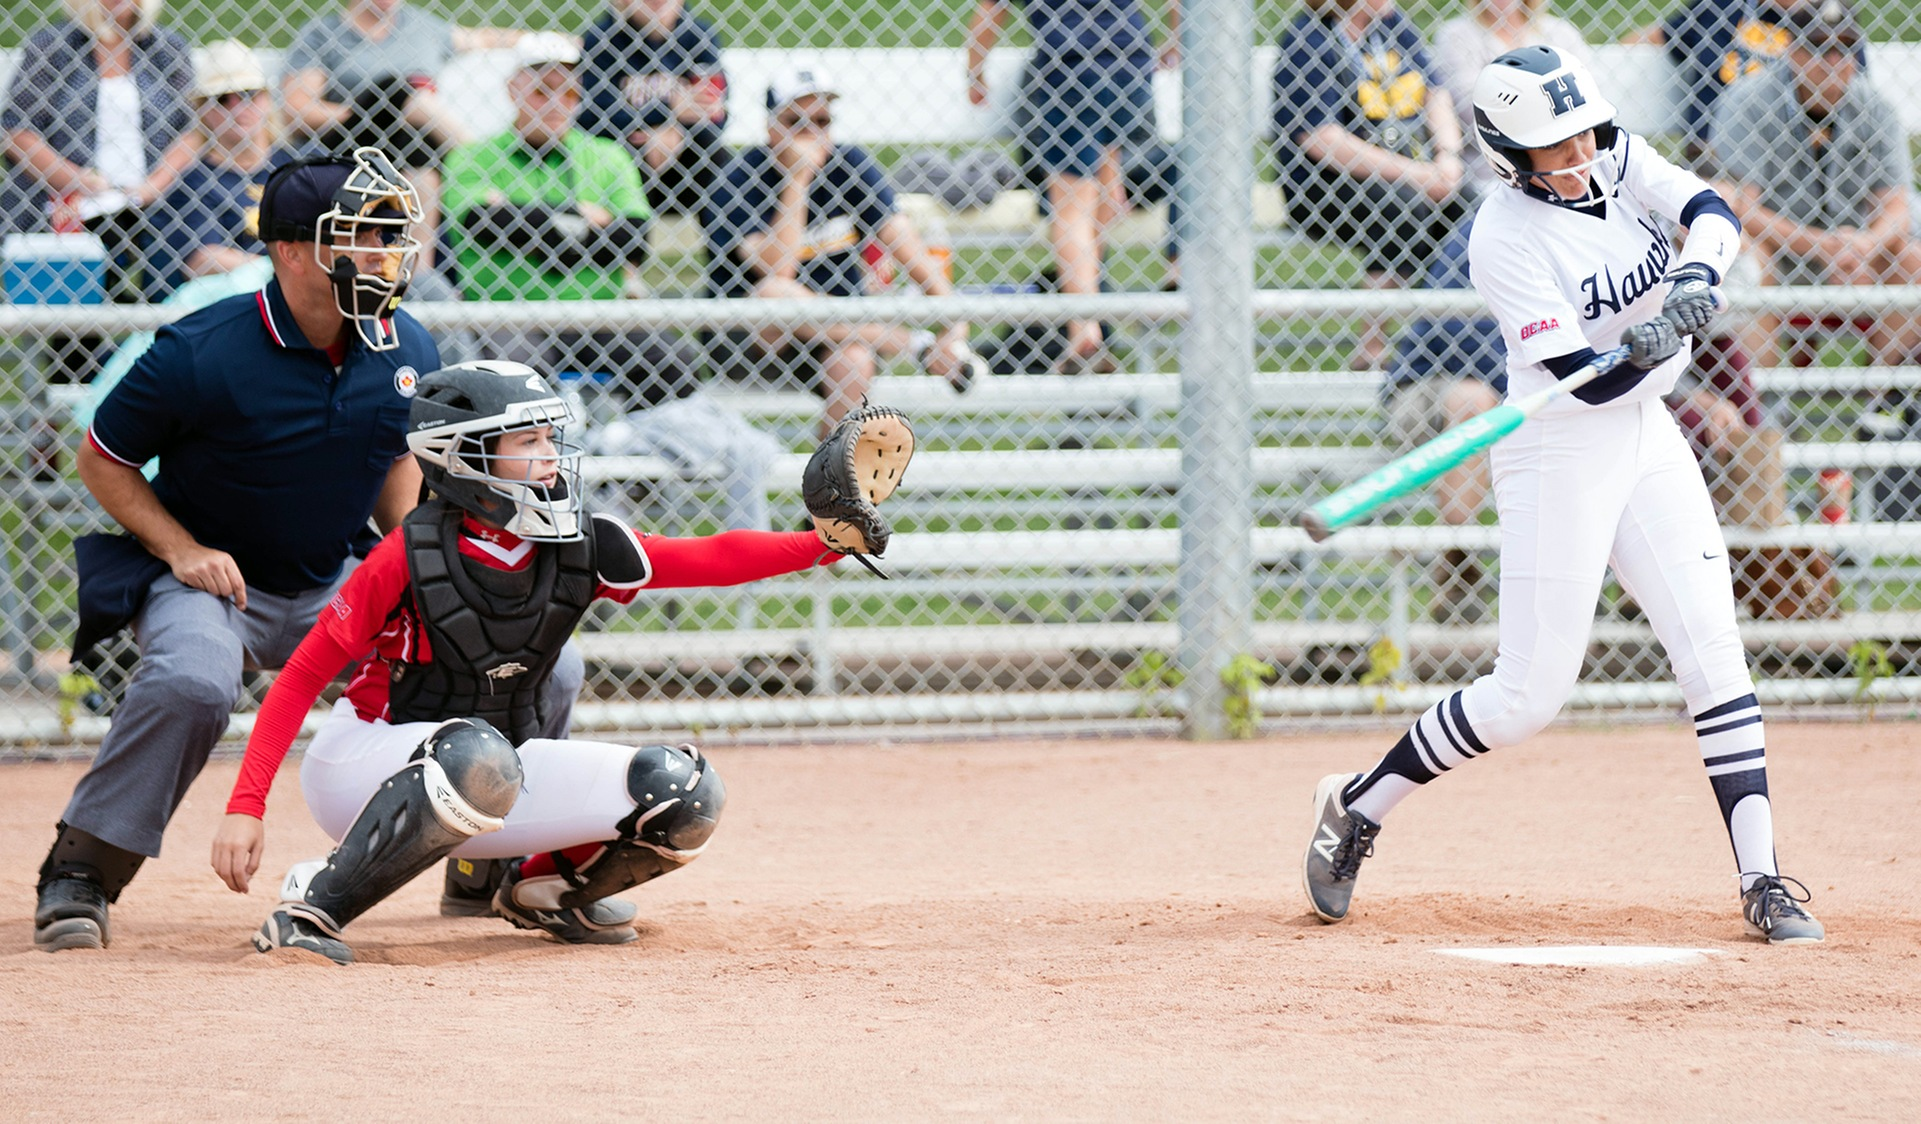 HAWKS SWEEP FANSHAWE AT NEW HOME TO OPEN 2018 SEASON